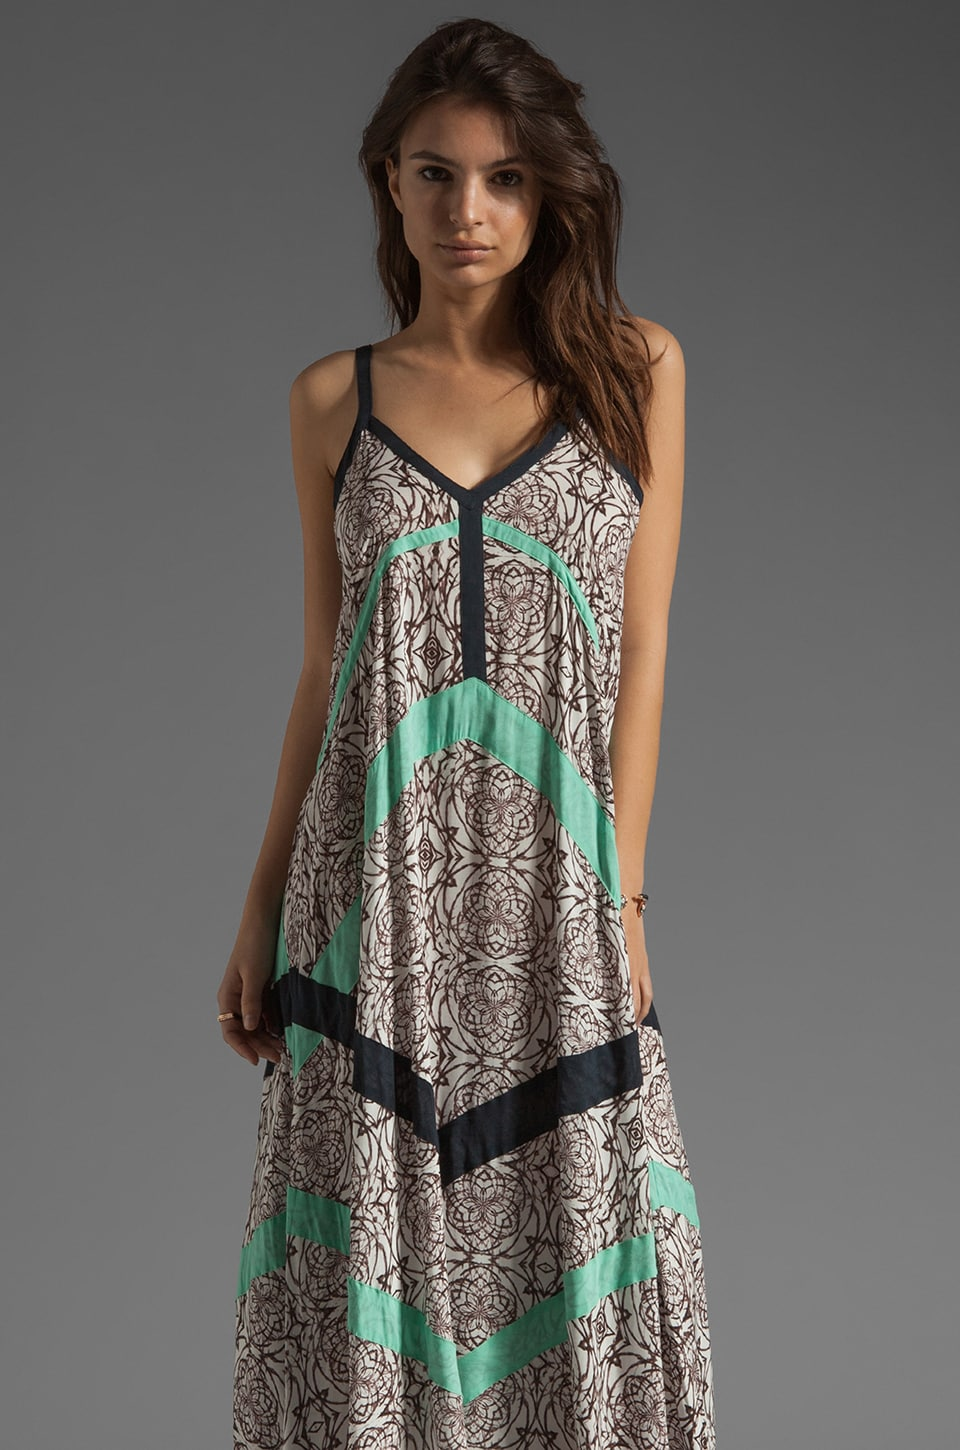 bless'ed are the meek The Fox Dress in Multi